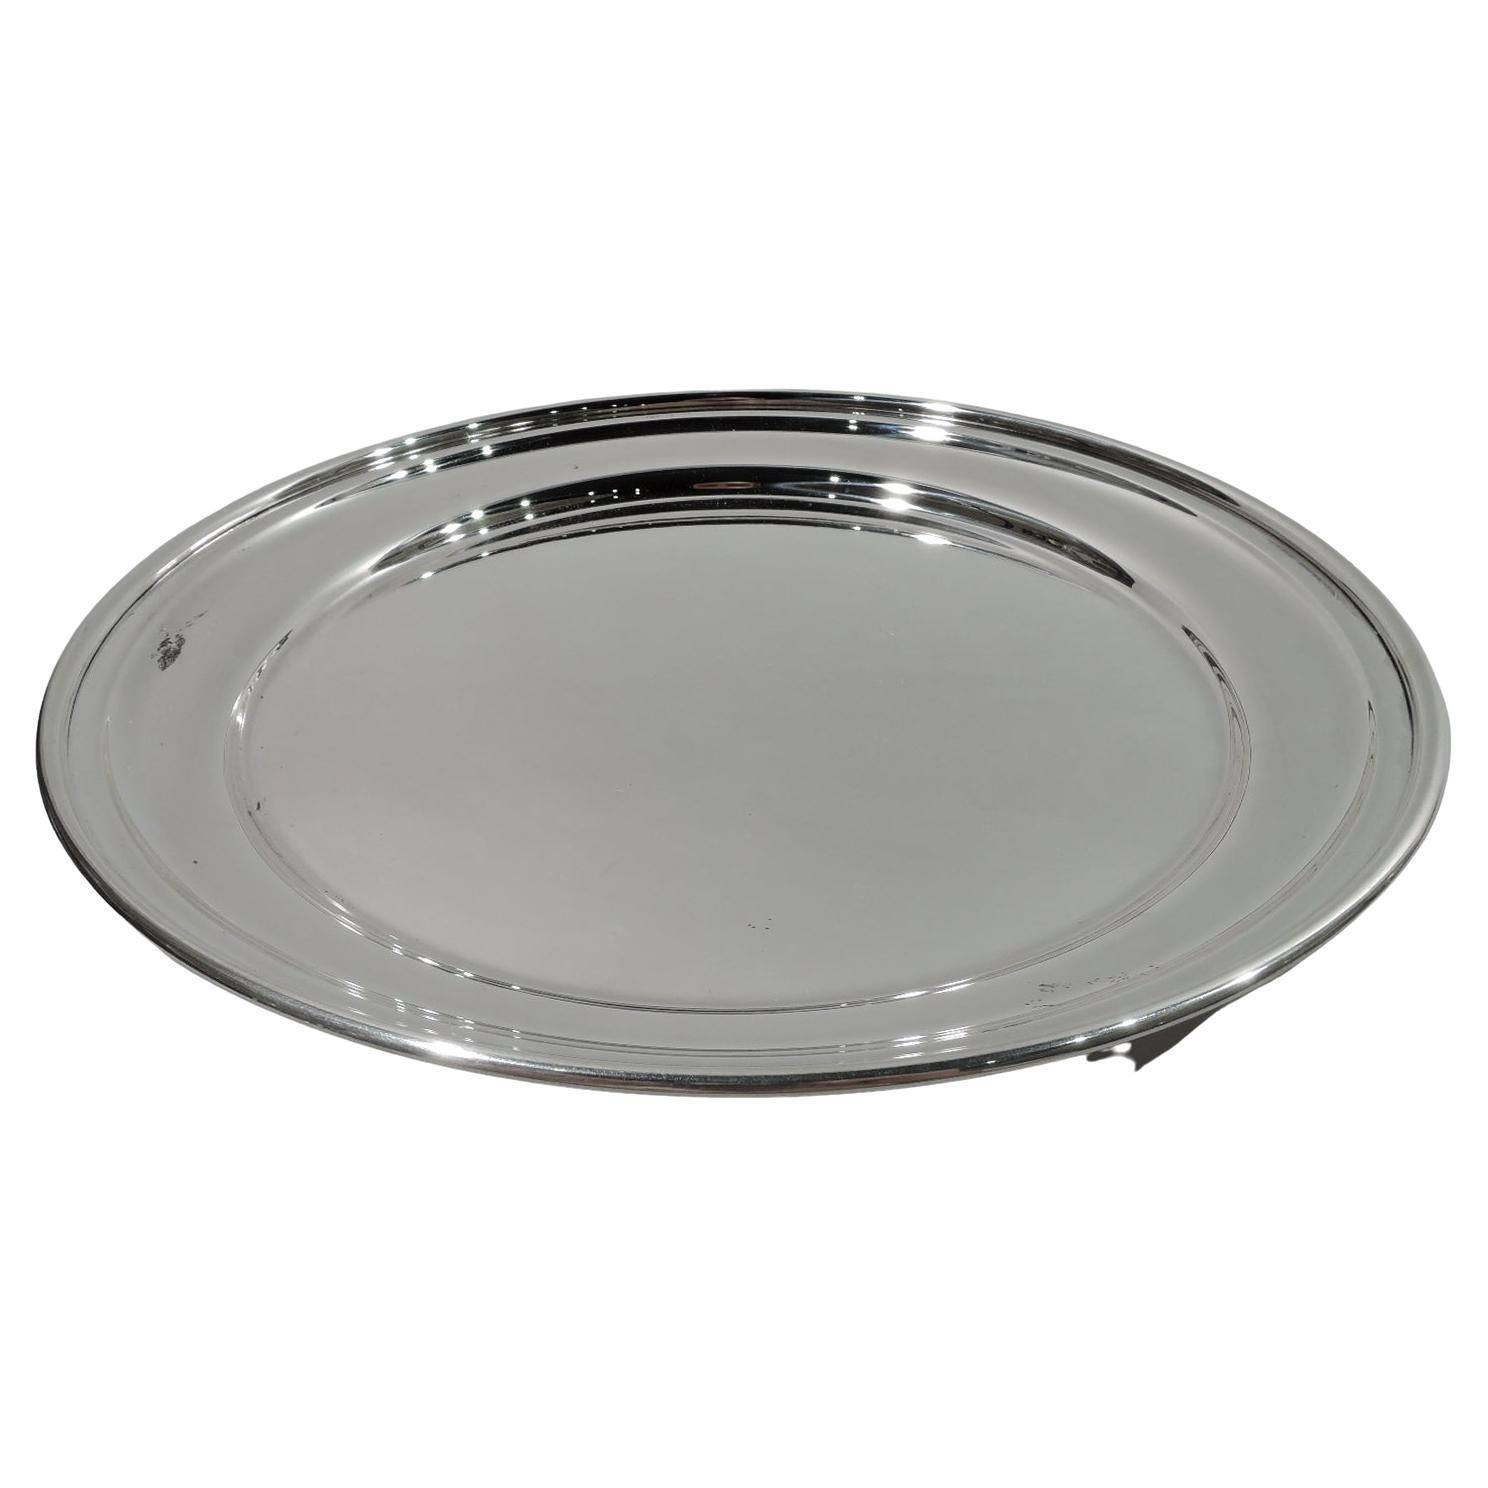 Cartier Modern Deep and Round Sterling Silver Serving Tray